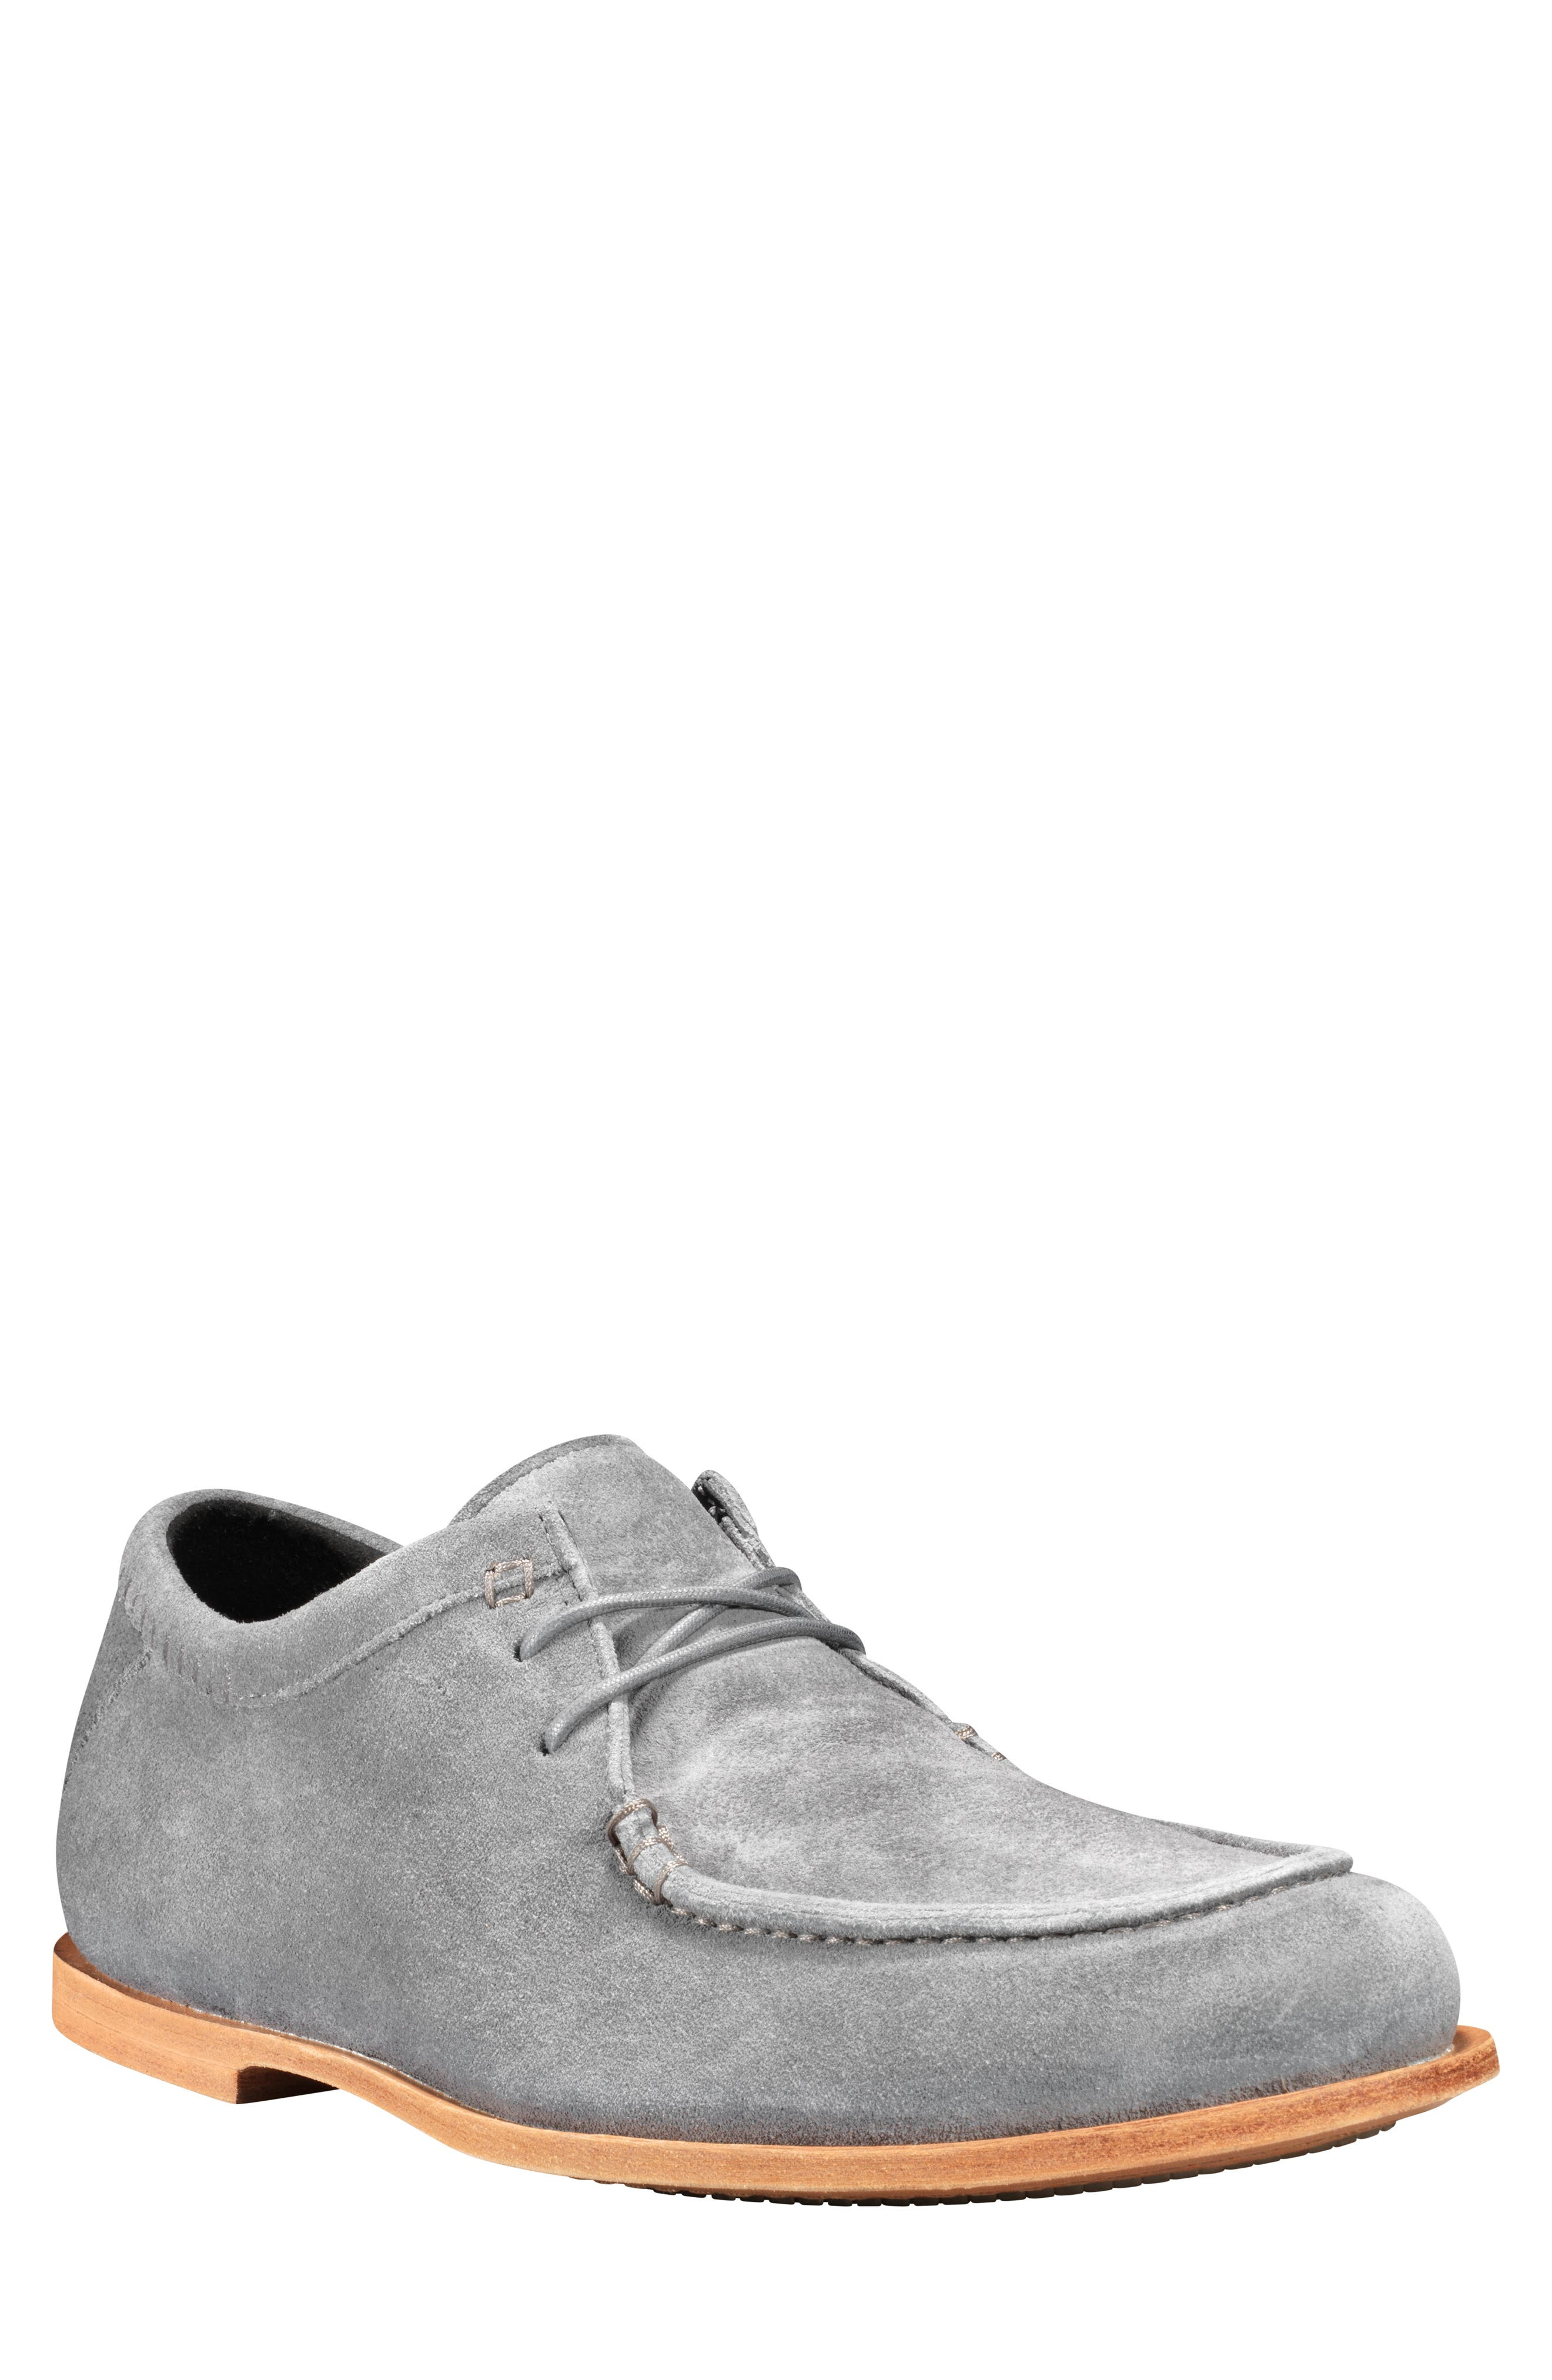 Tauk Point Moc Toe Derby, Main, color, GREY SUEDE